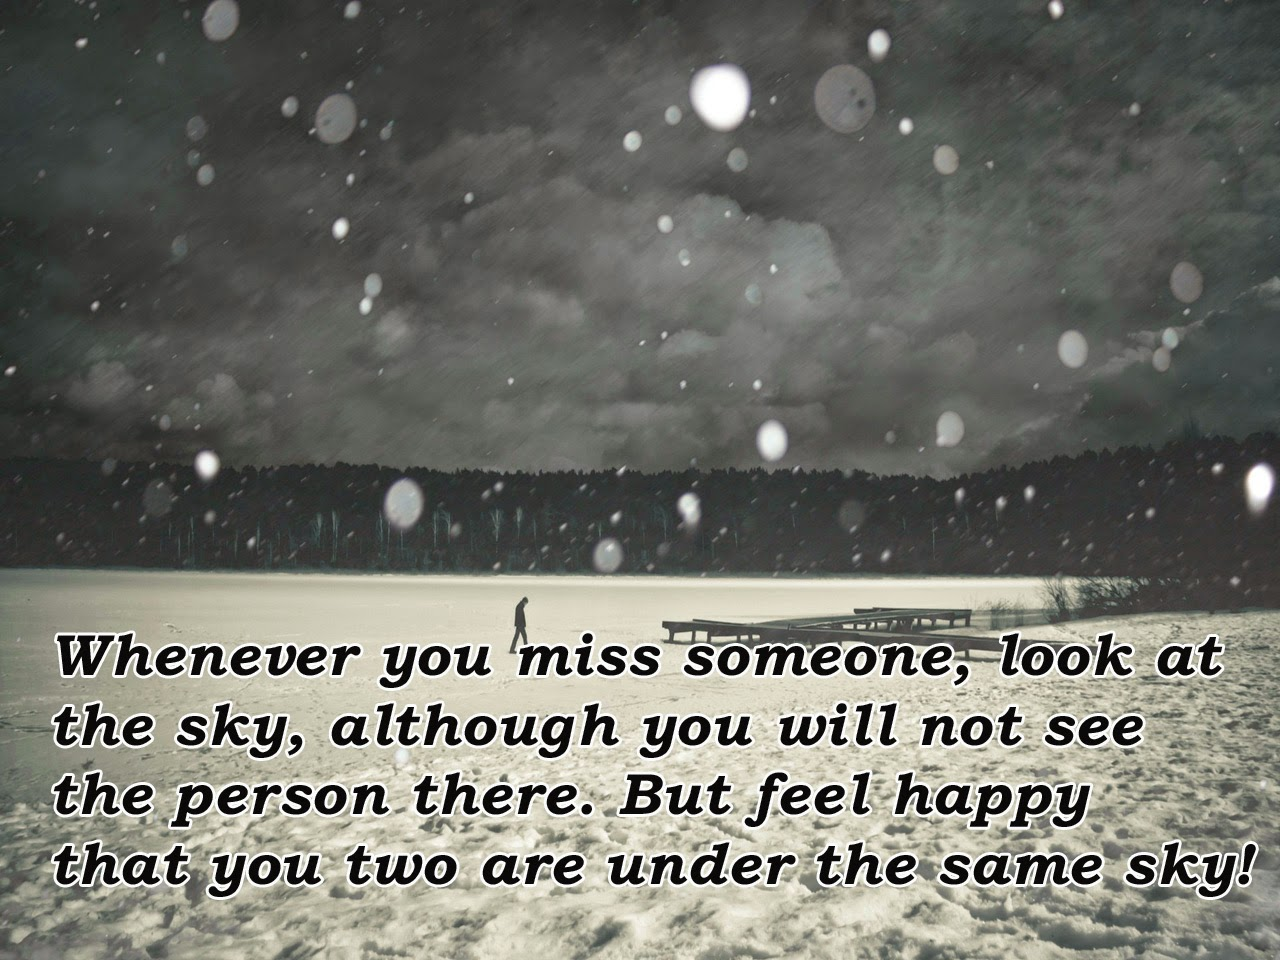 Sad Poems About Missing Someone You Love Sad quotes with wallpapers for f b poetry likers